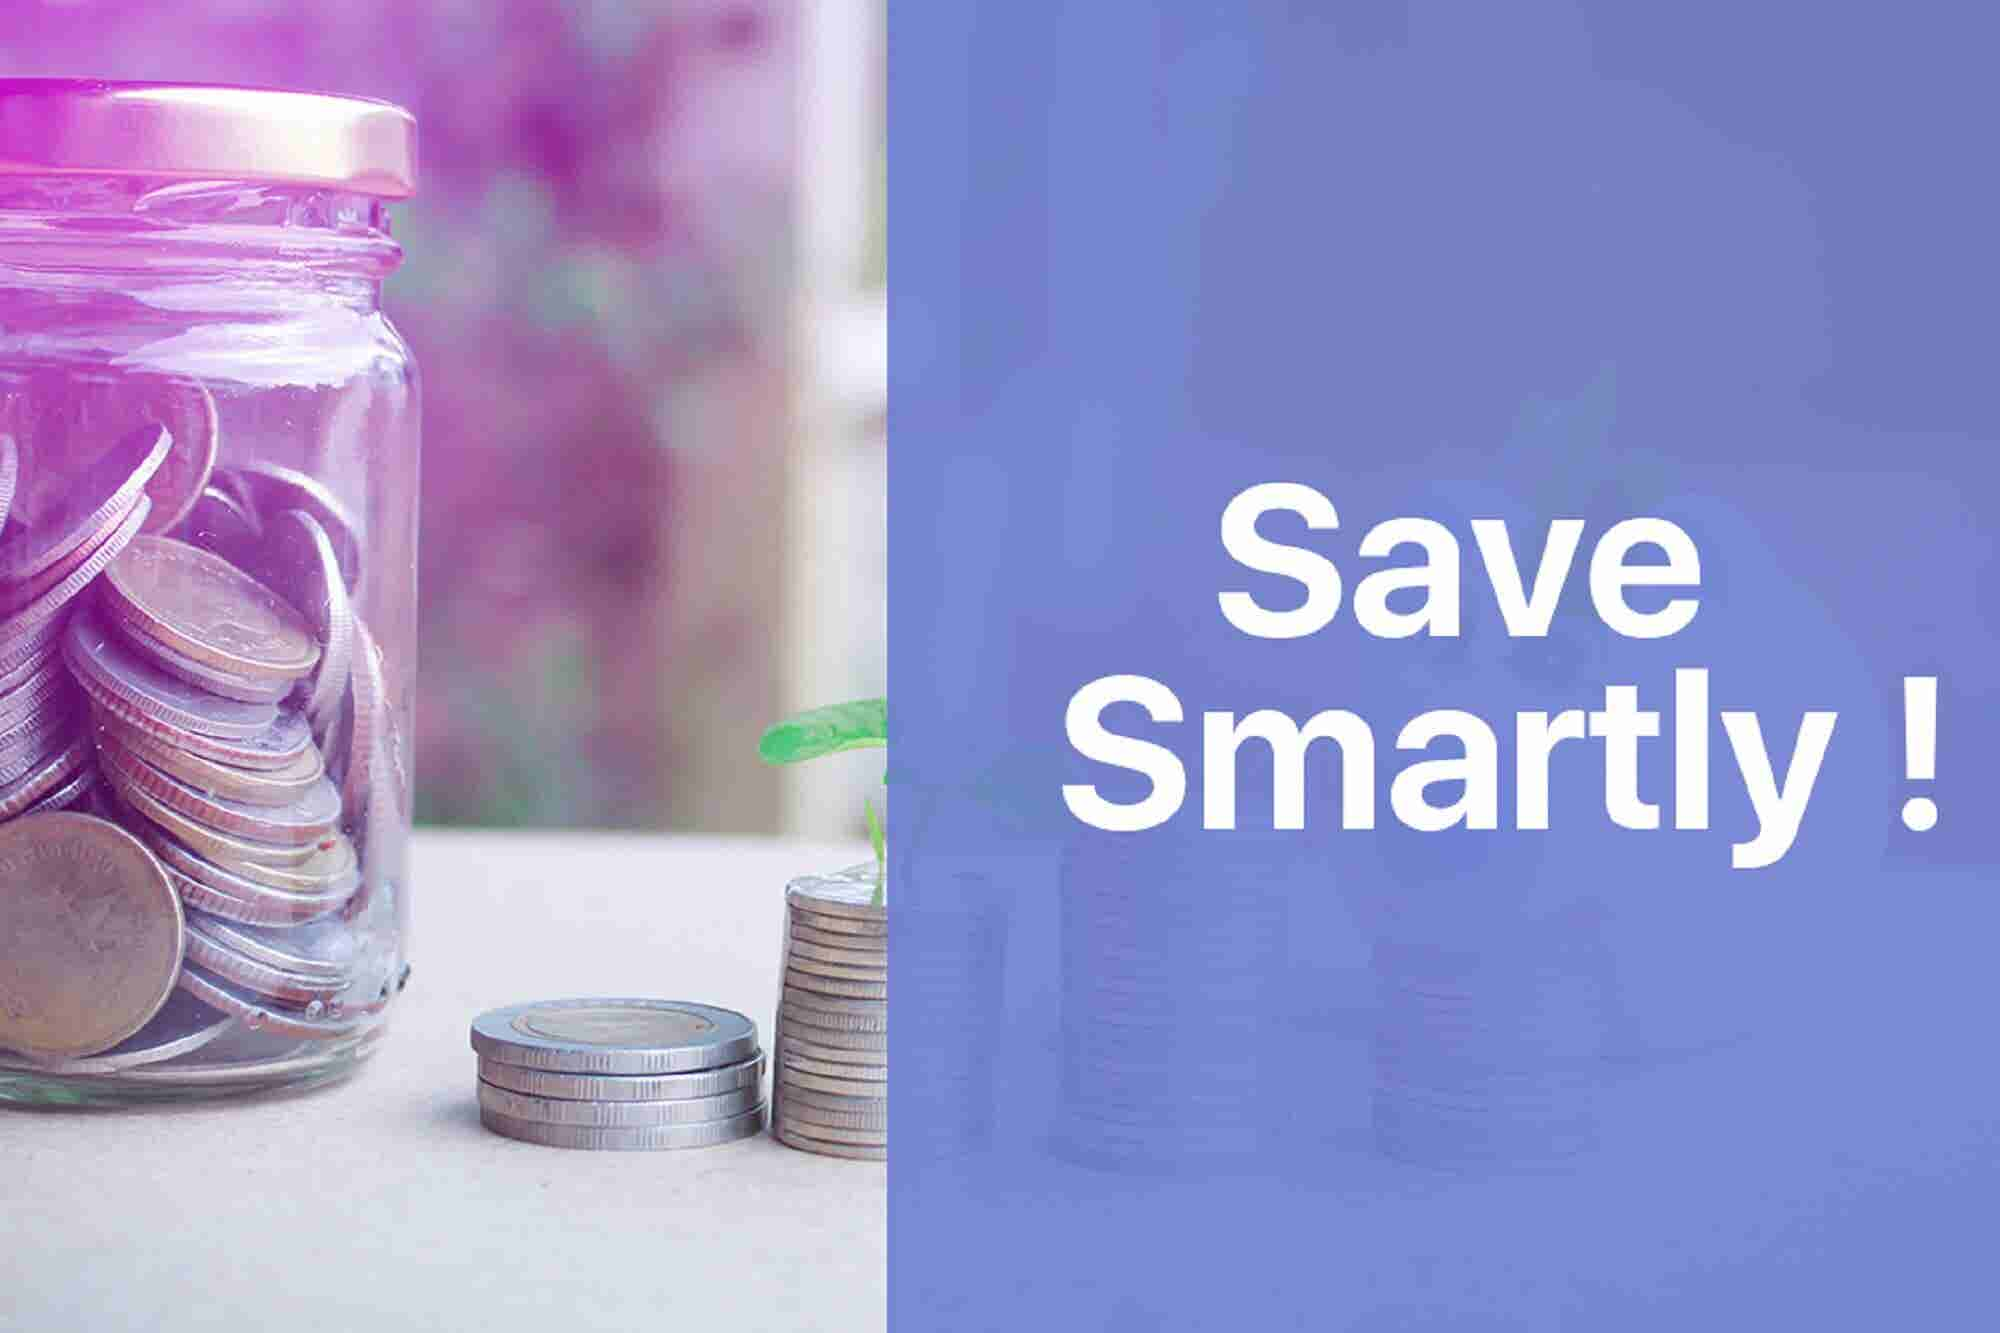 #InvestmentSpecial: Here are 4 Tips for Entrepreneurs to Save Money